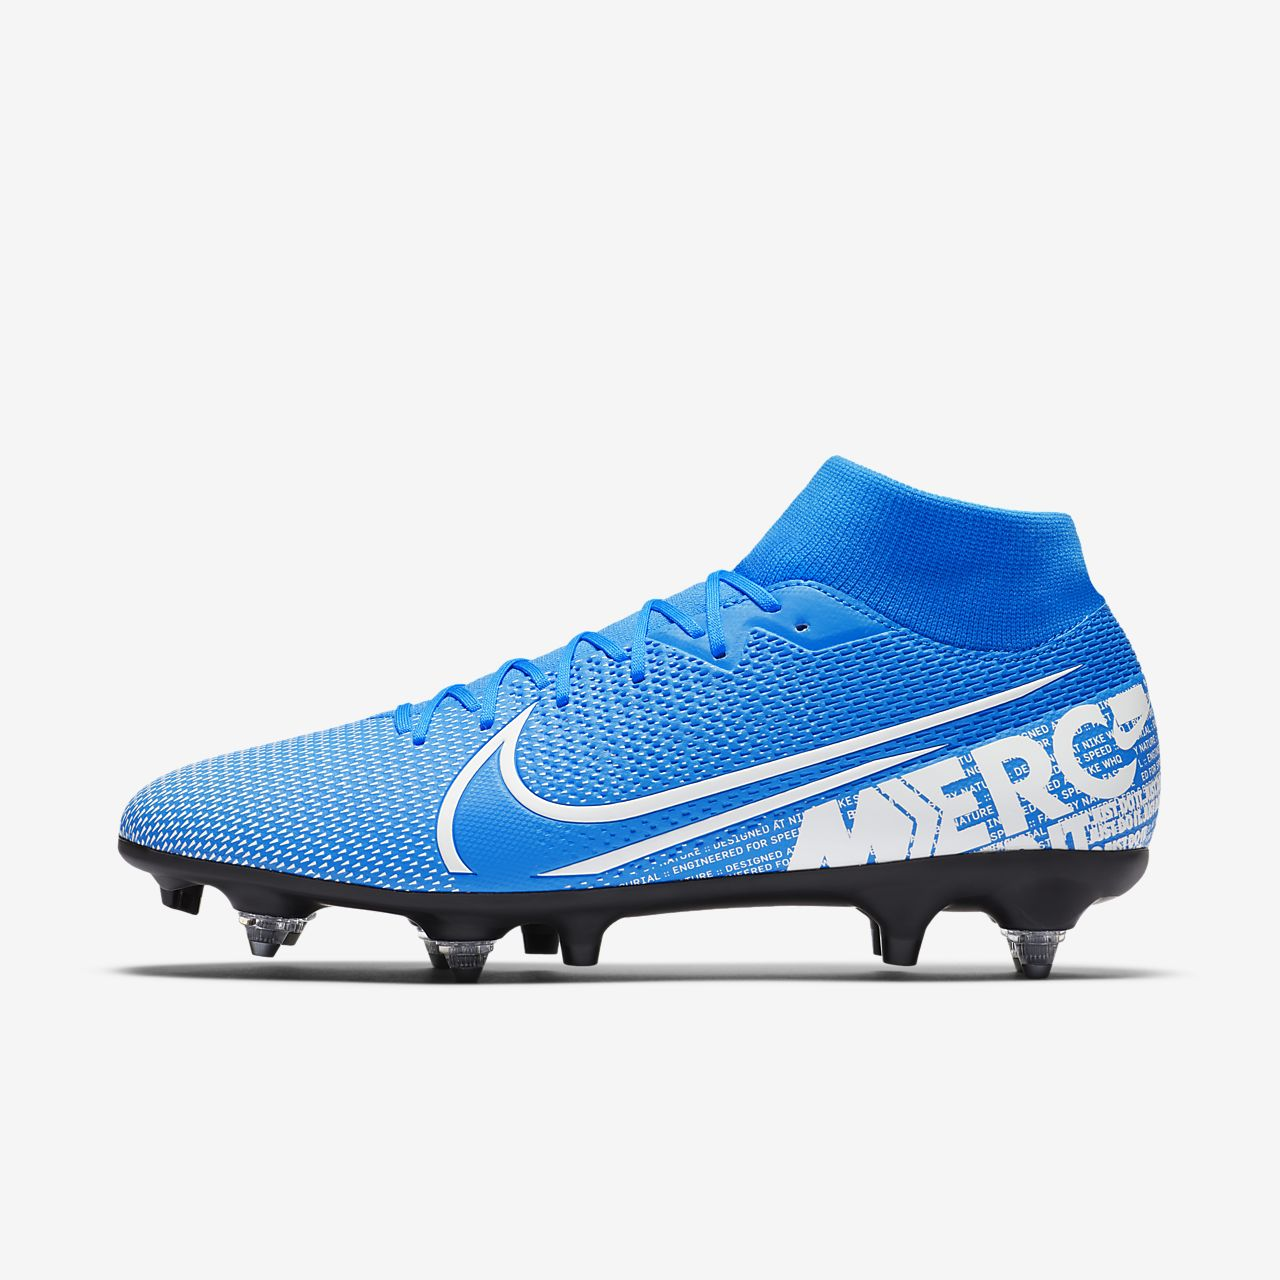 Nike Mercurial Superfly 7 Academy SG-PRO Anti-Clog Traction Botes de futbol per a terreny tou